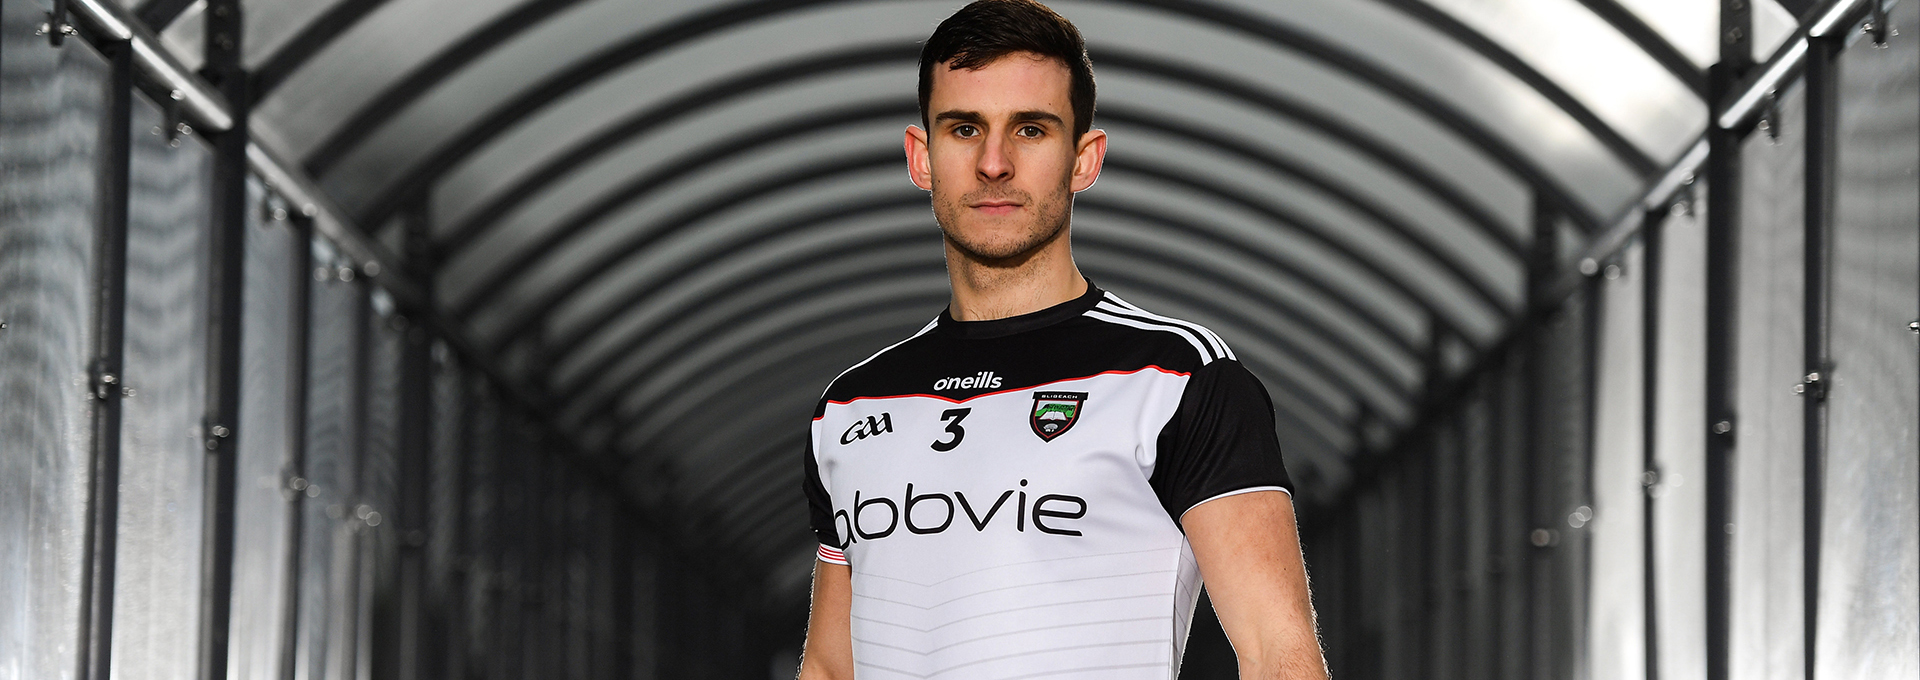 24 January 2019; Niall Murphy of Sligo in attendance at the launch of the 2019 O'Neill's Sligo GAA Jersey, which took place at the team sponsors AbbVie's Manorhamilton Road facility in Sligo. Photo by Sam Barnes/Sportsfile *** NO REPRODUCTION FEE ***